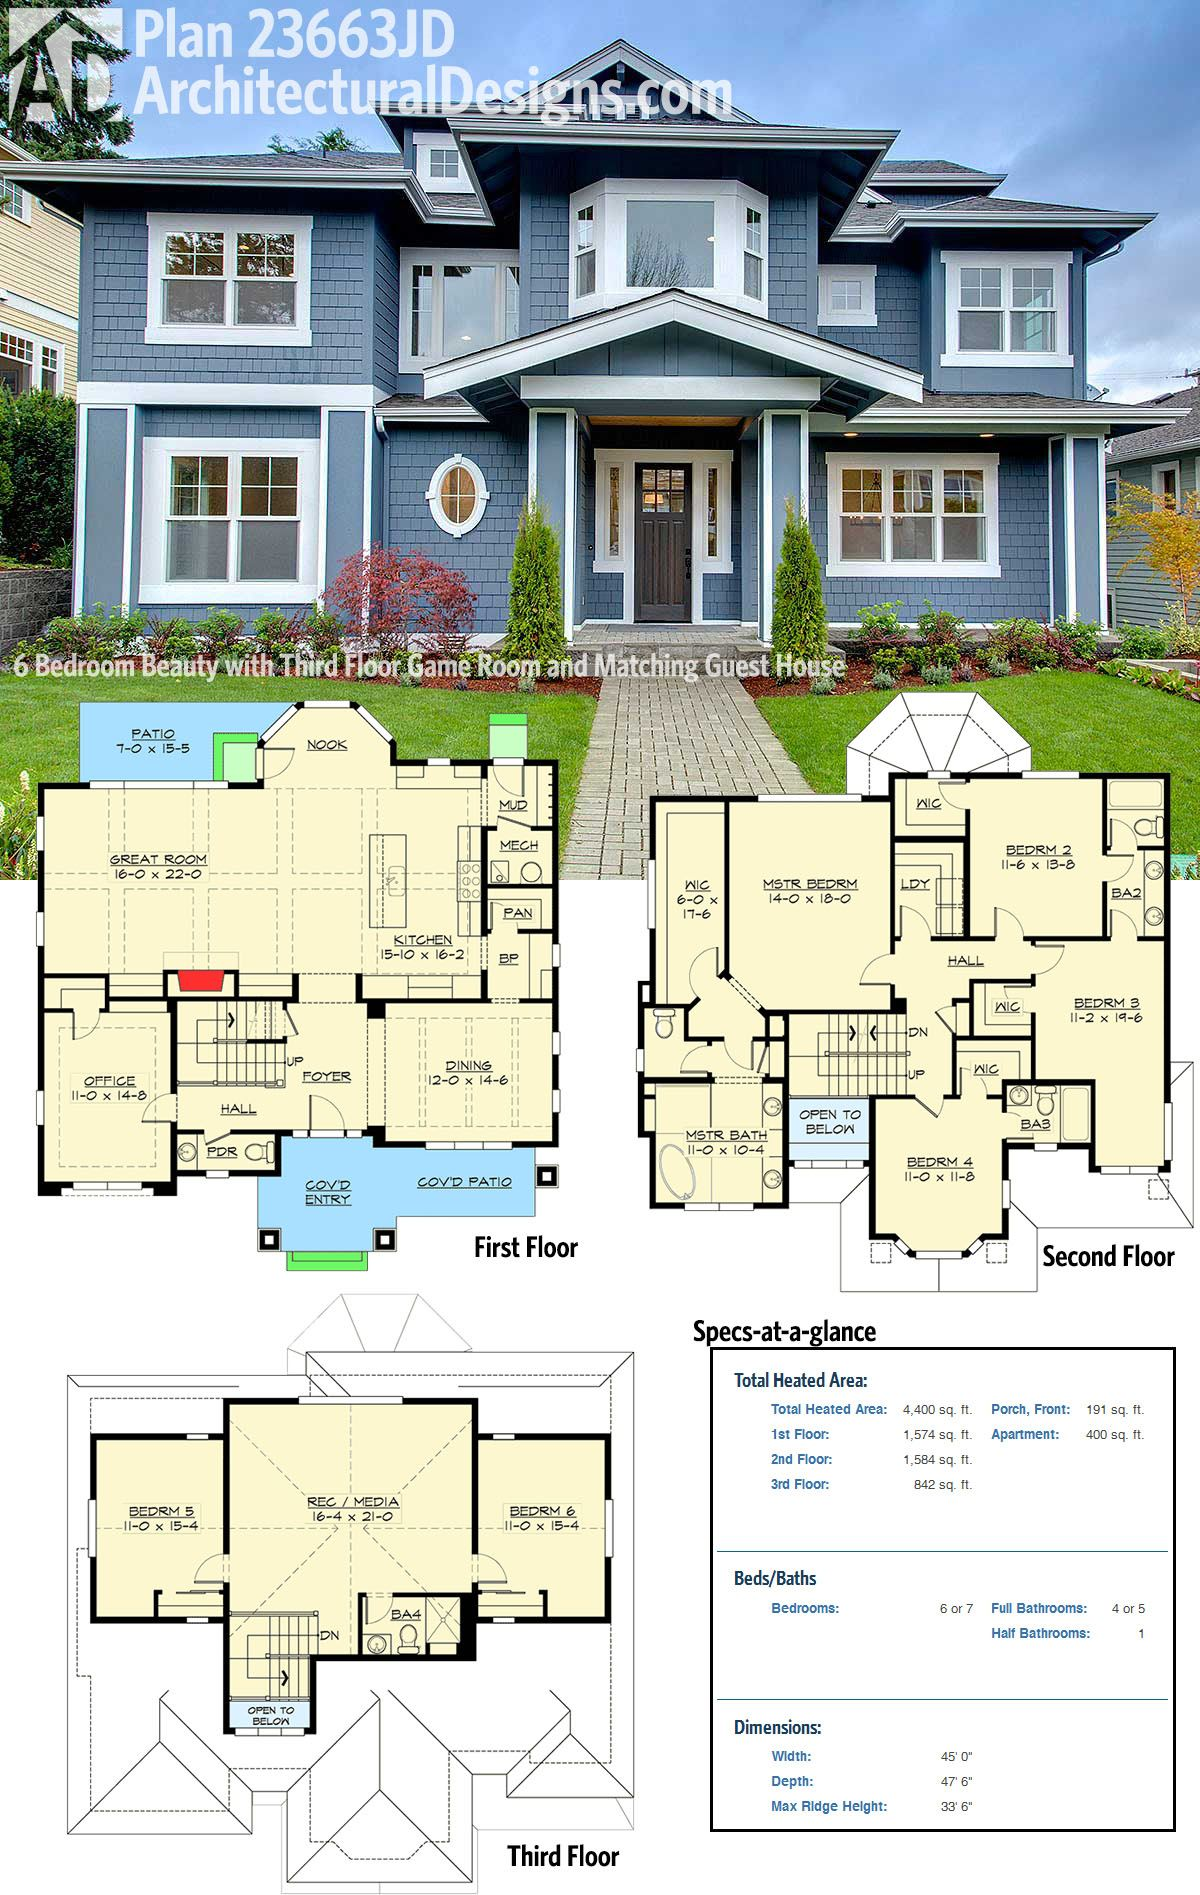 Plan 23663jd 6 Bedroom Beauty With Third Floor Game Room: plans for guest house